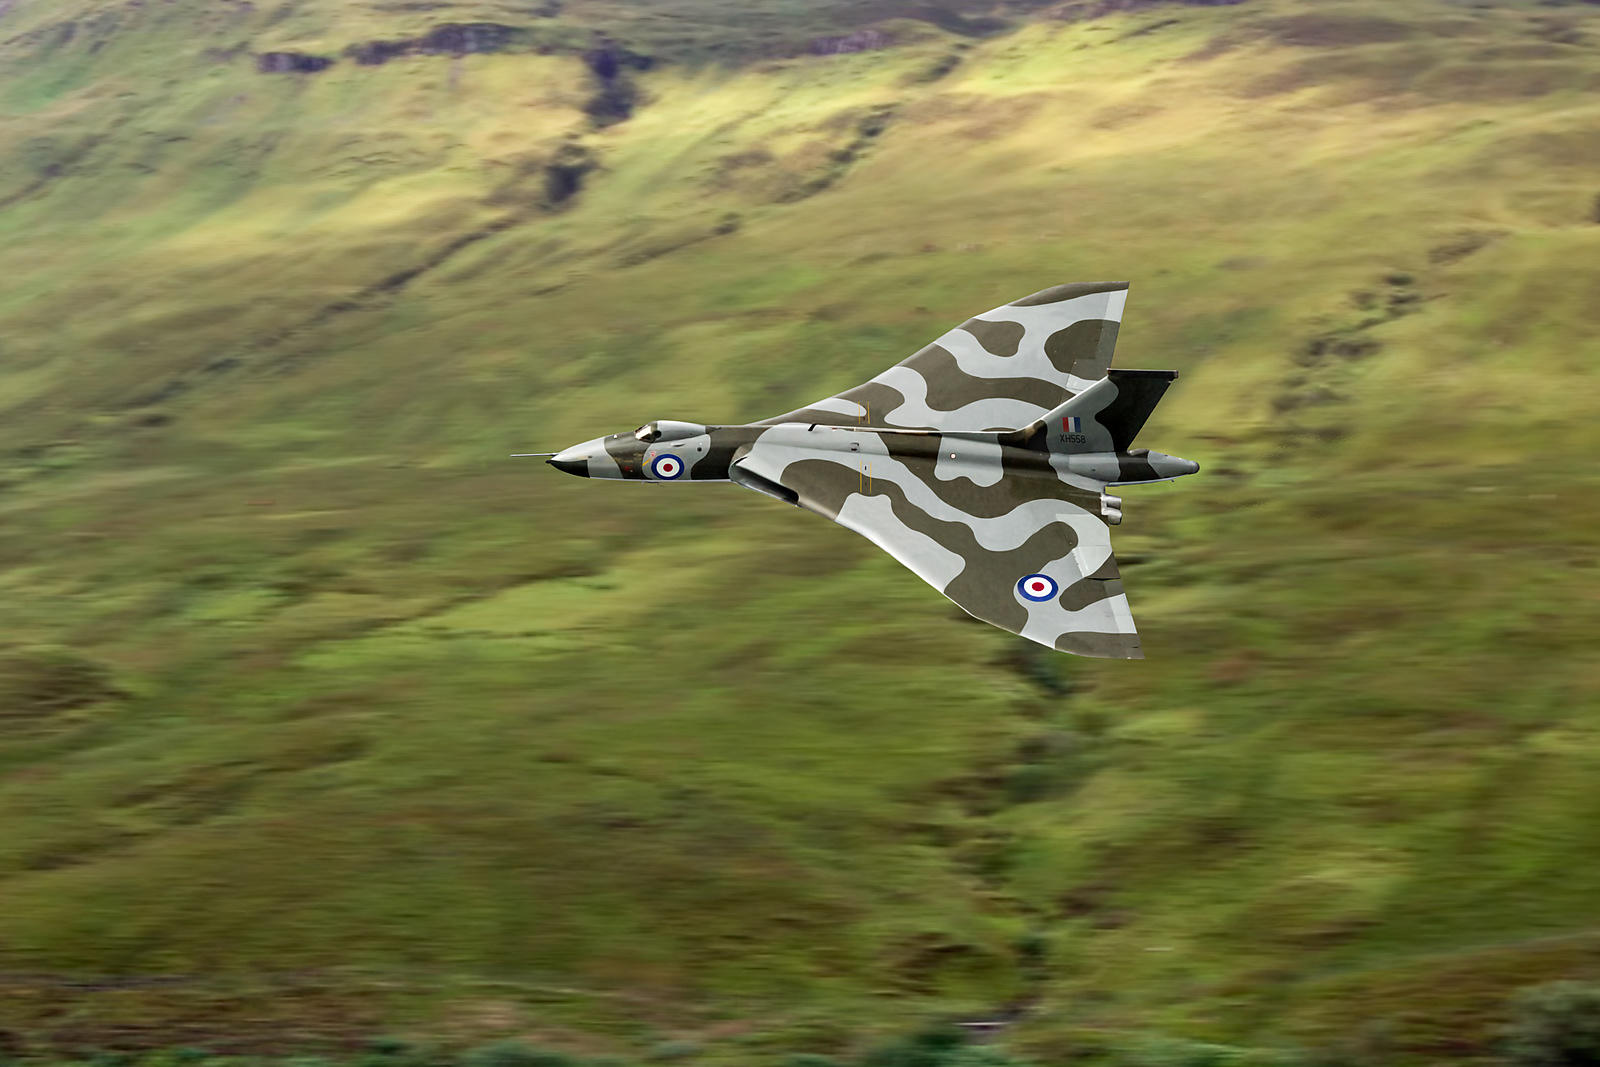 Vulcan B2 low-level against hillside